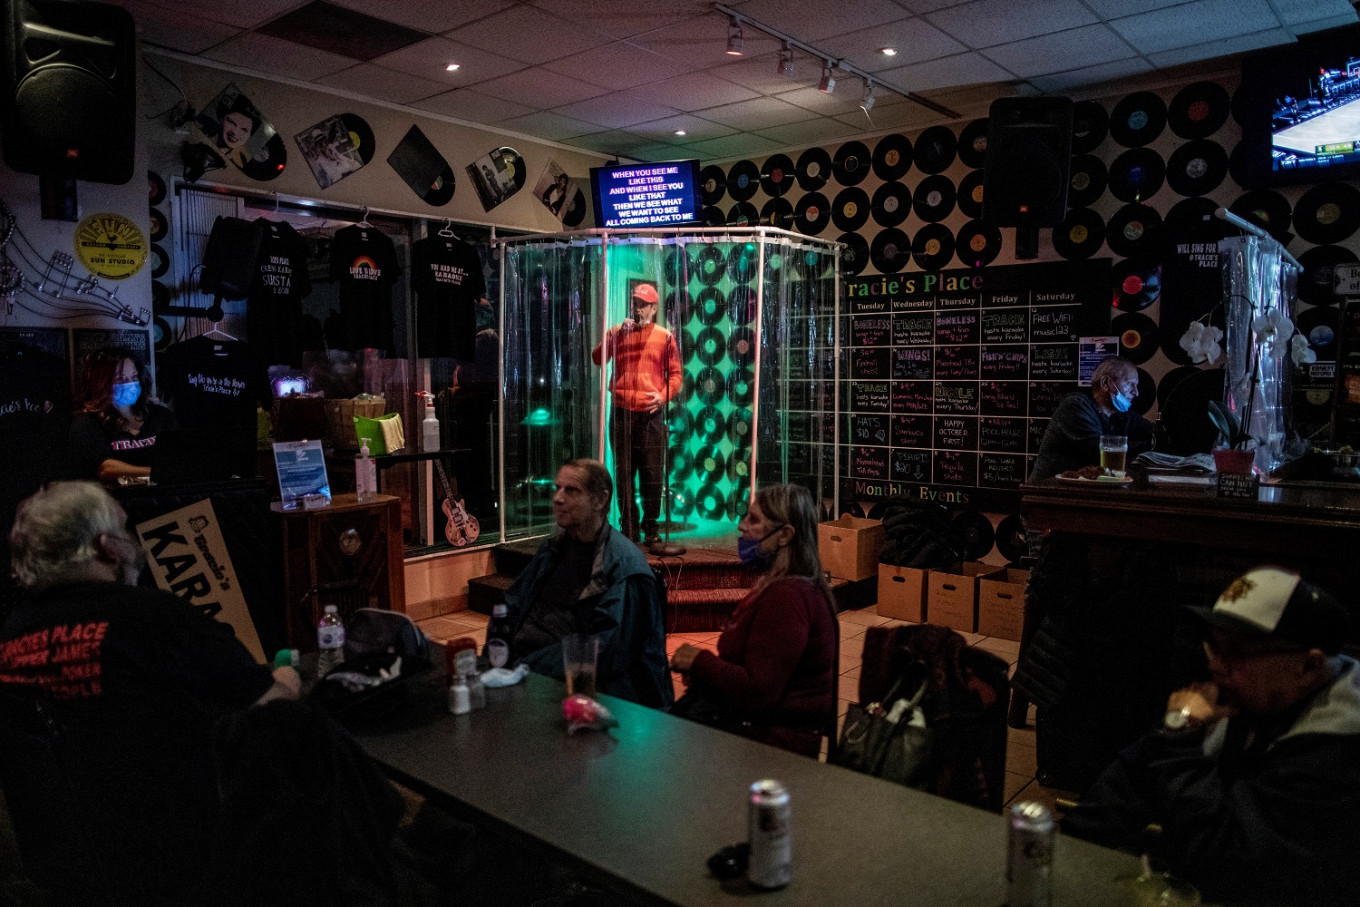 Canada karaoke bar lets customers sing in the shower during pandemic